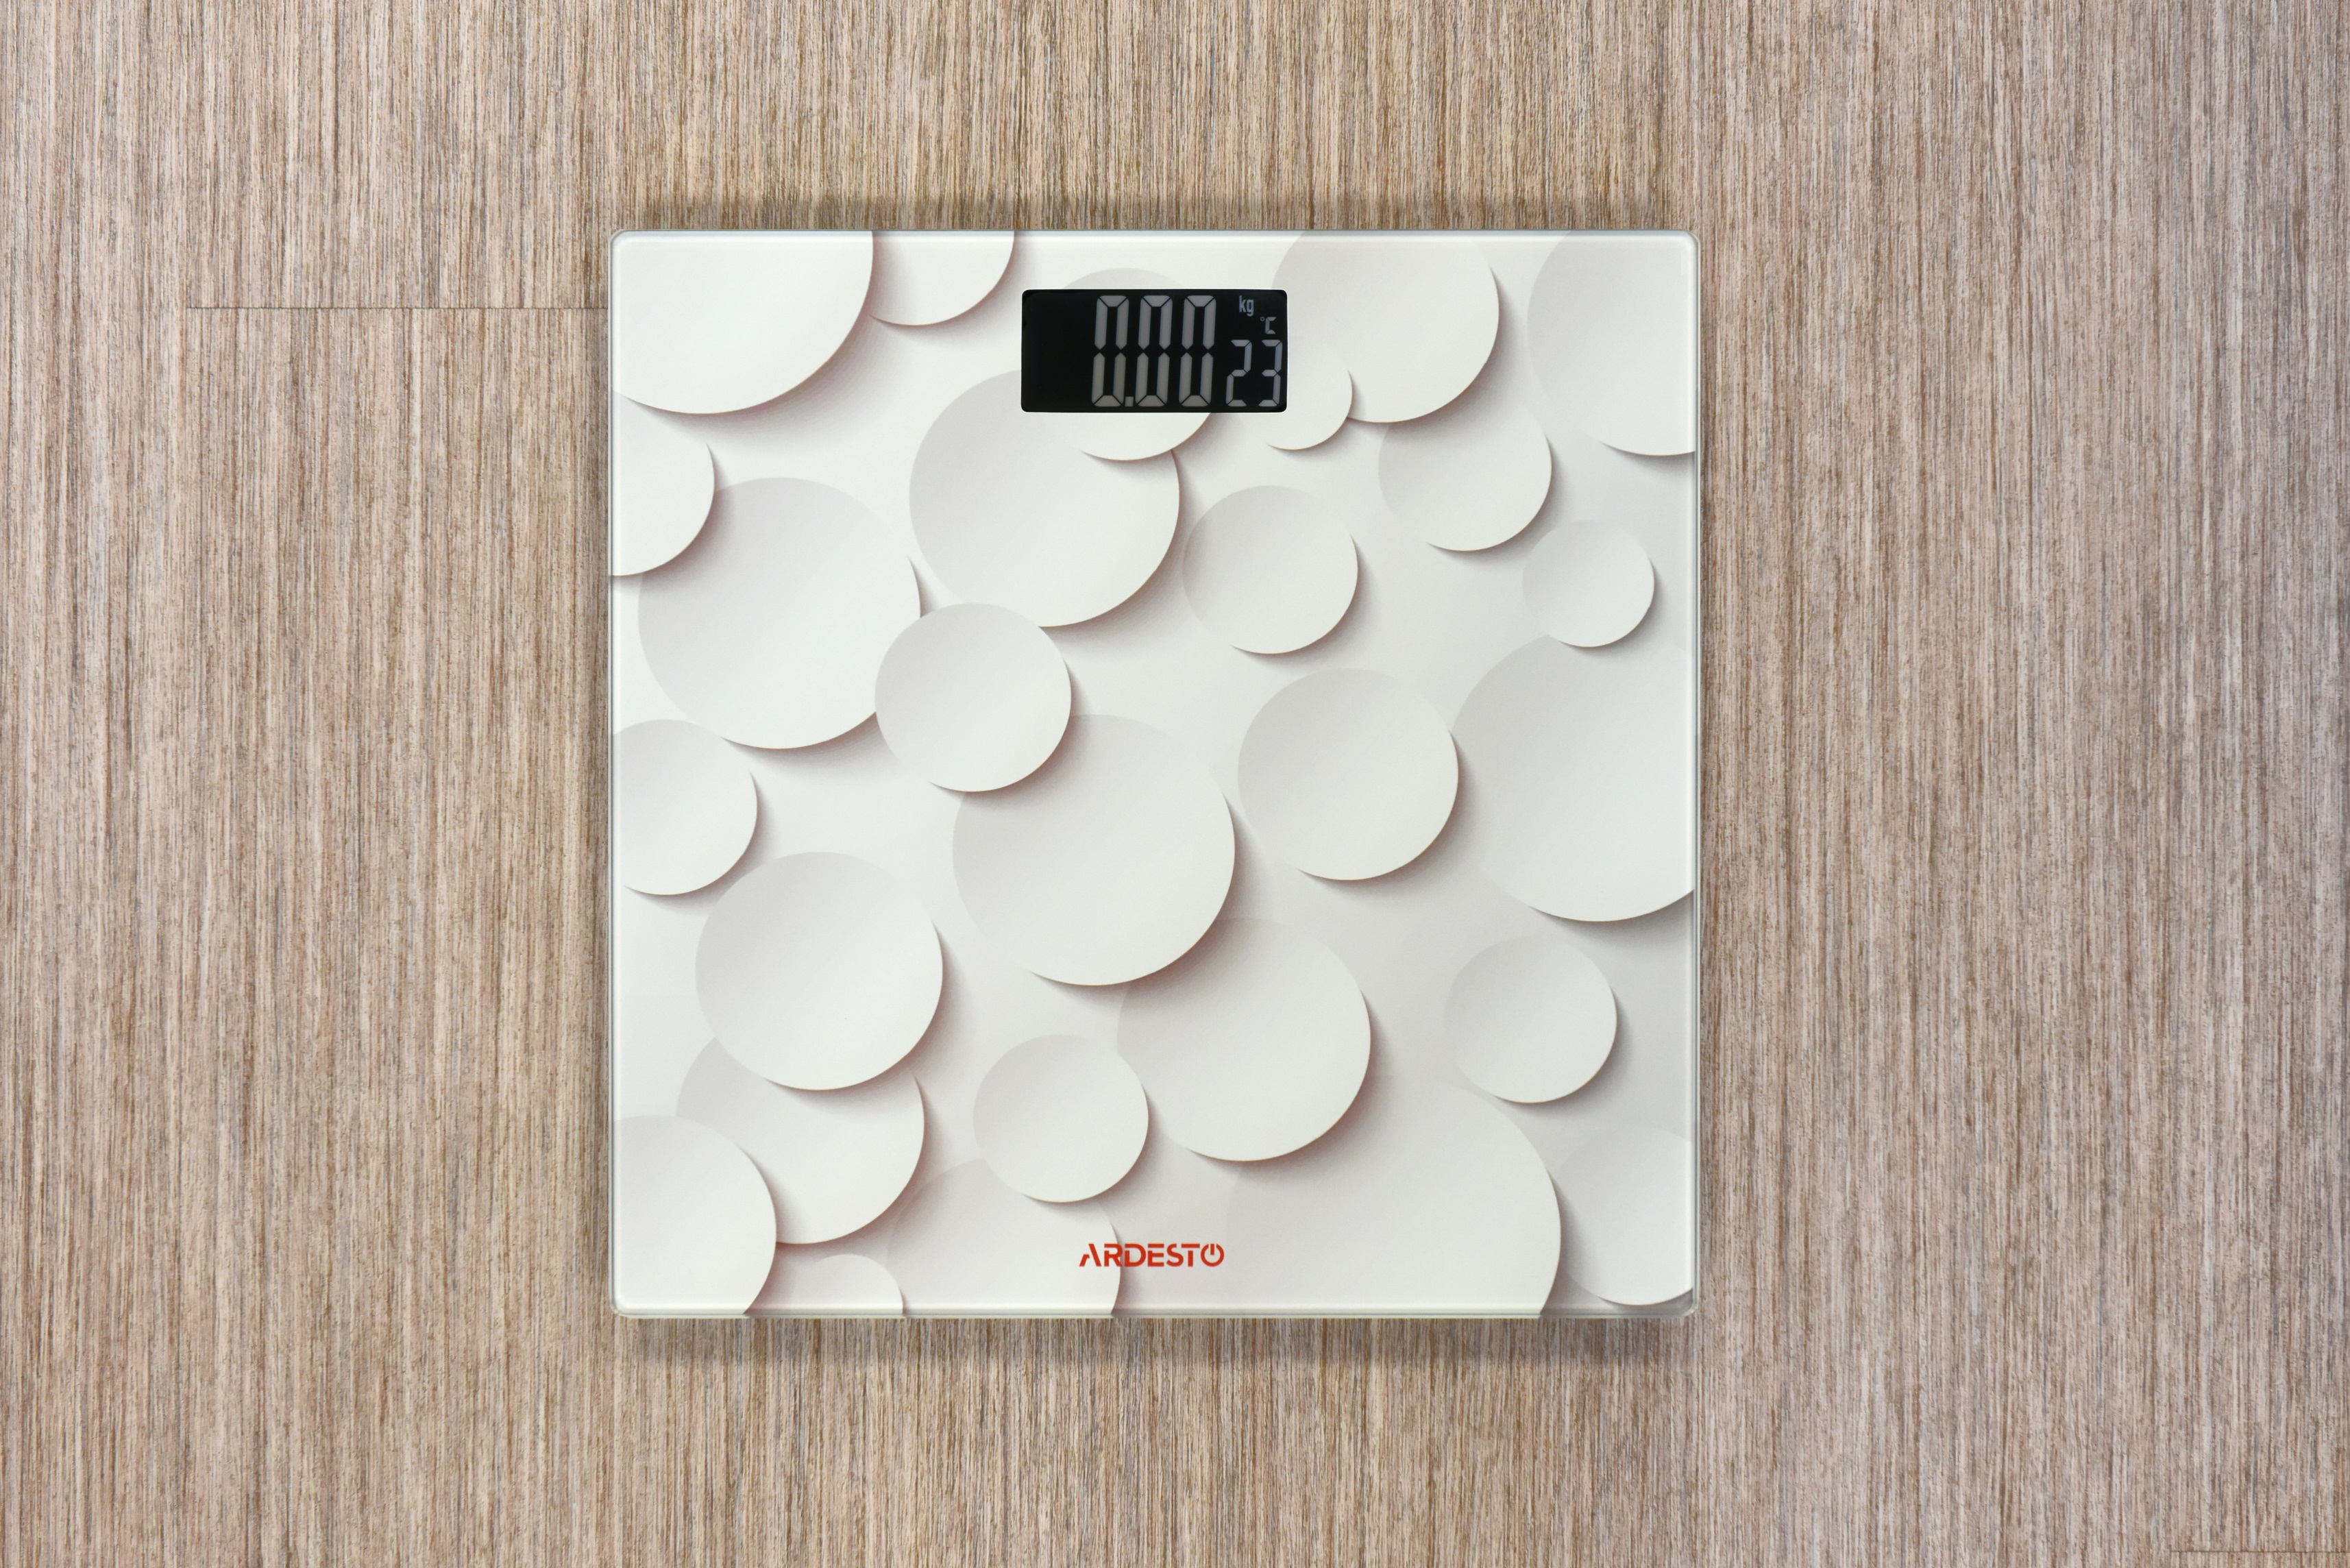 Ardesto scales for weight control and maintaining a healthy lifestyle